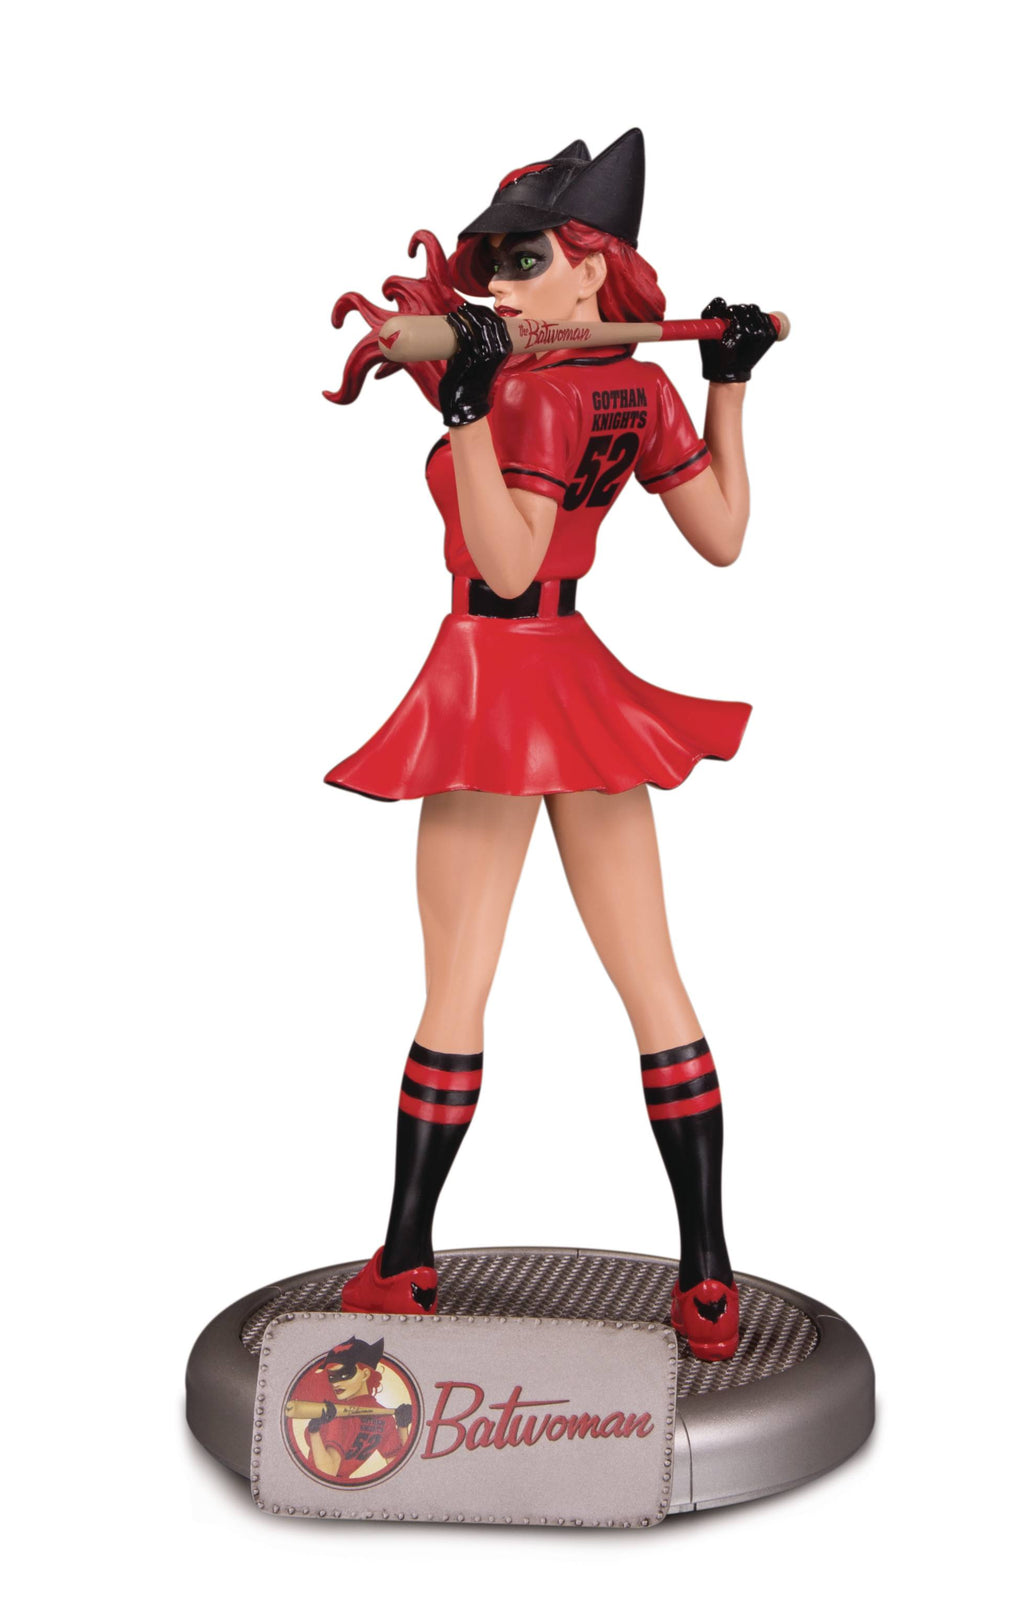 DC Bombshells Batwoman Alternate Away Uniform Statue